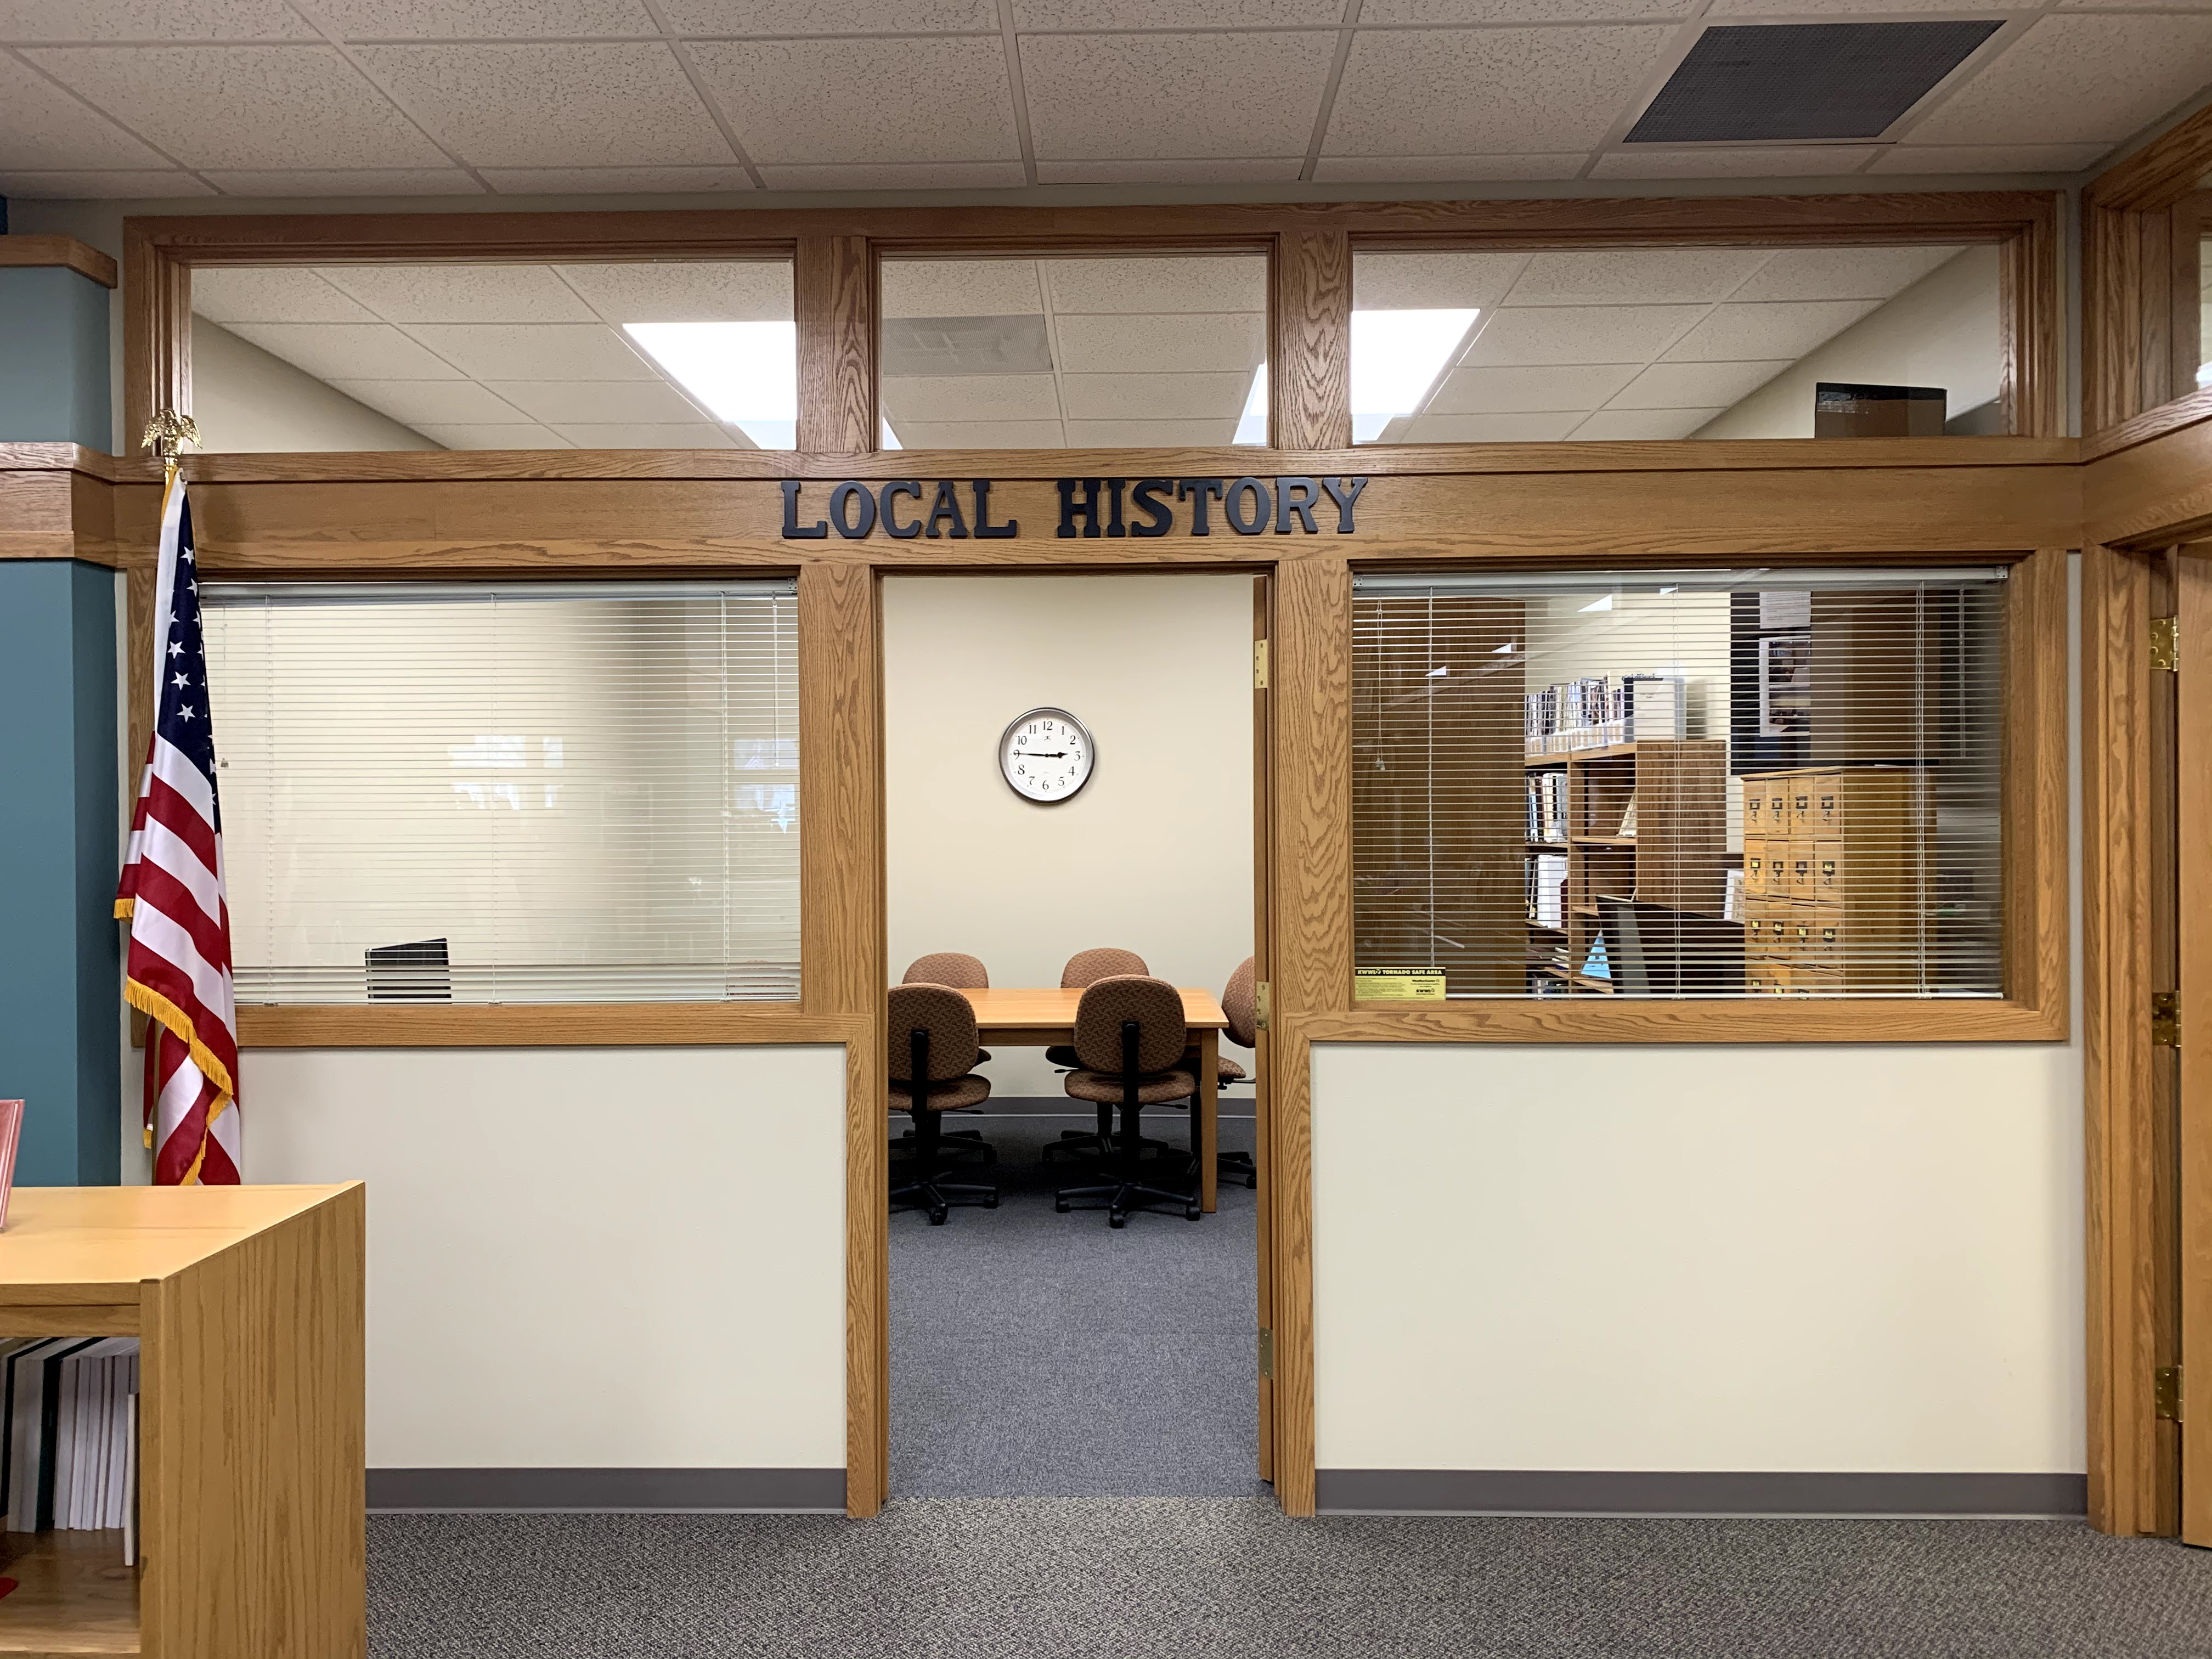 Local History Room Image 1.jpg